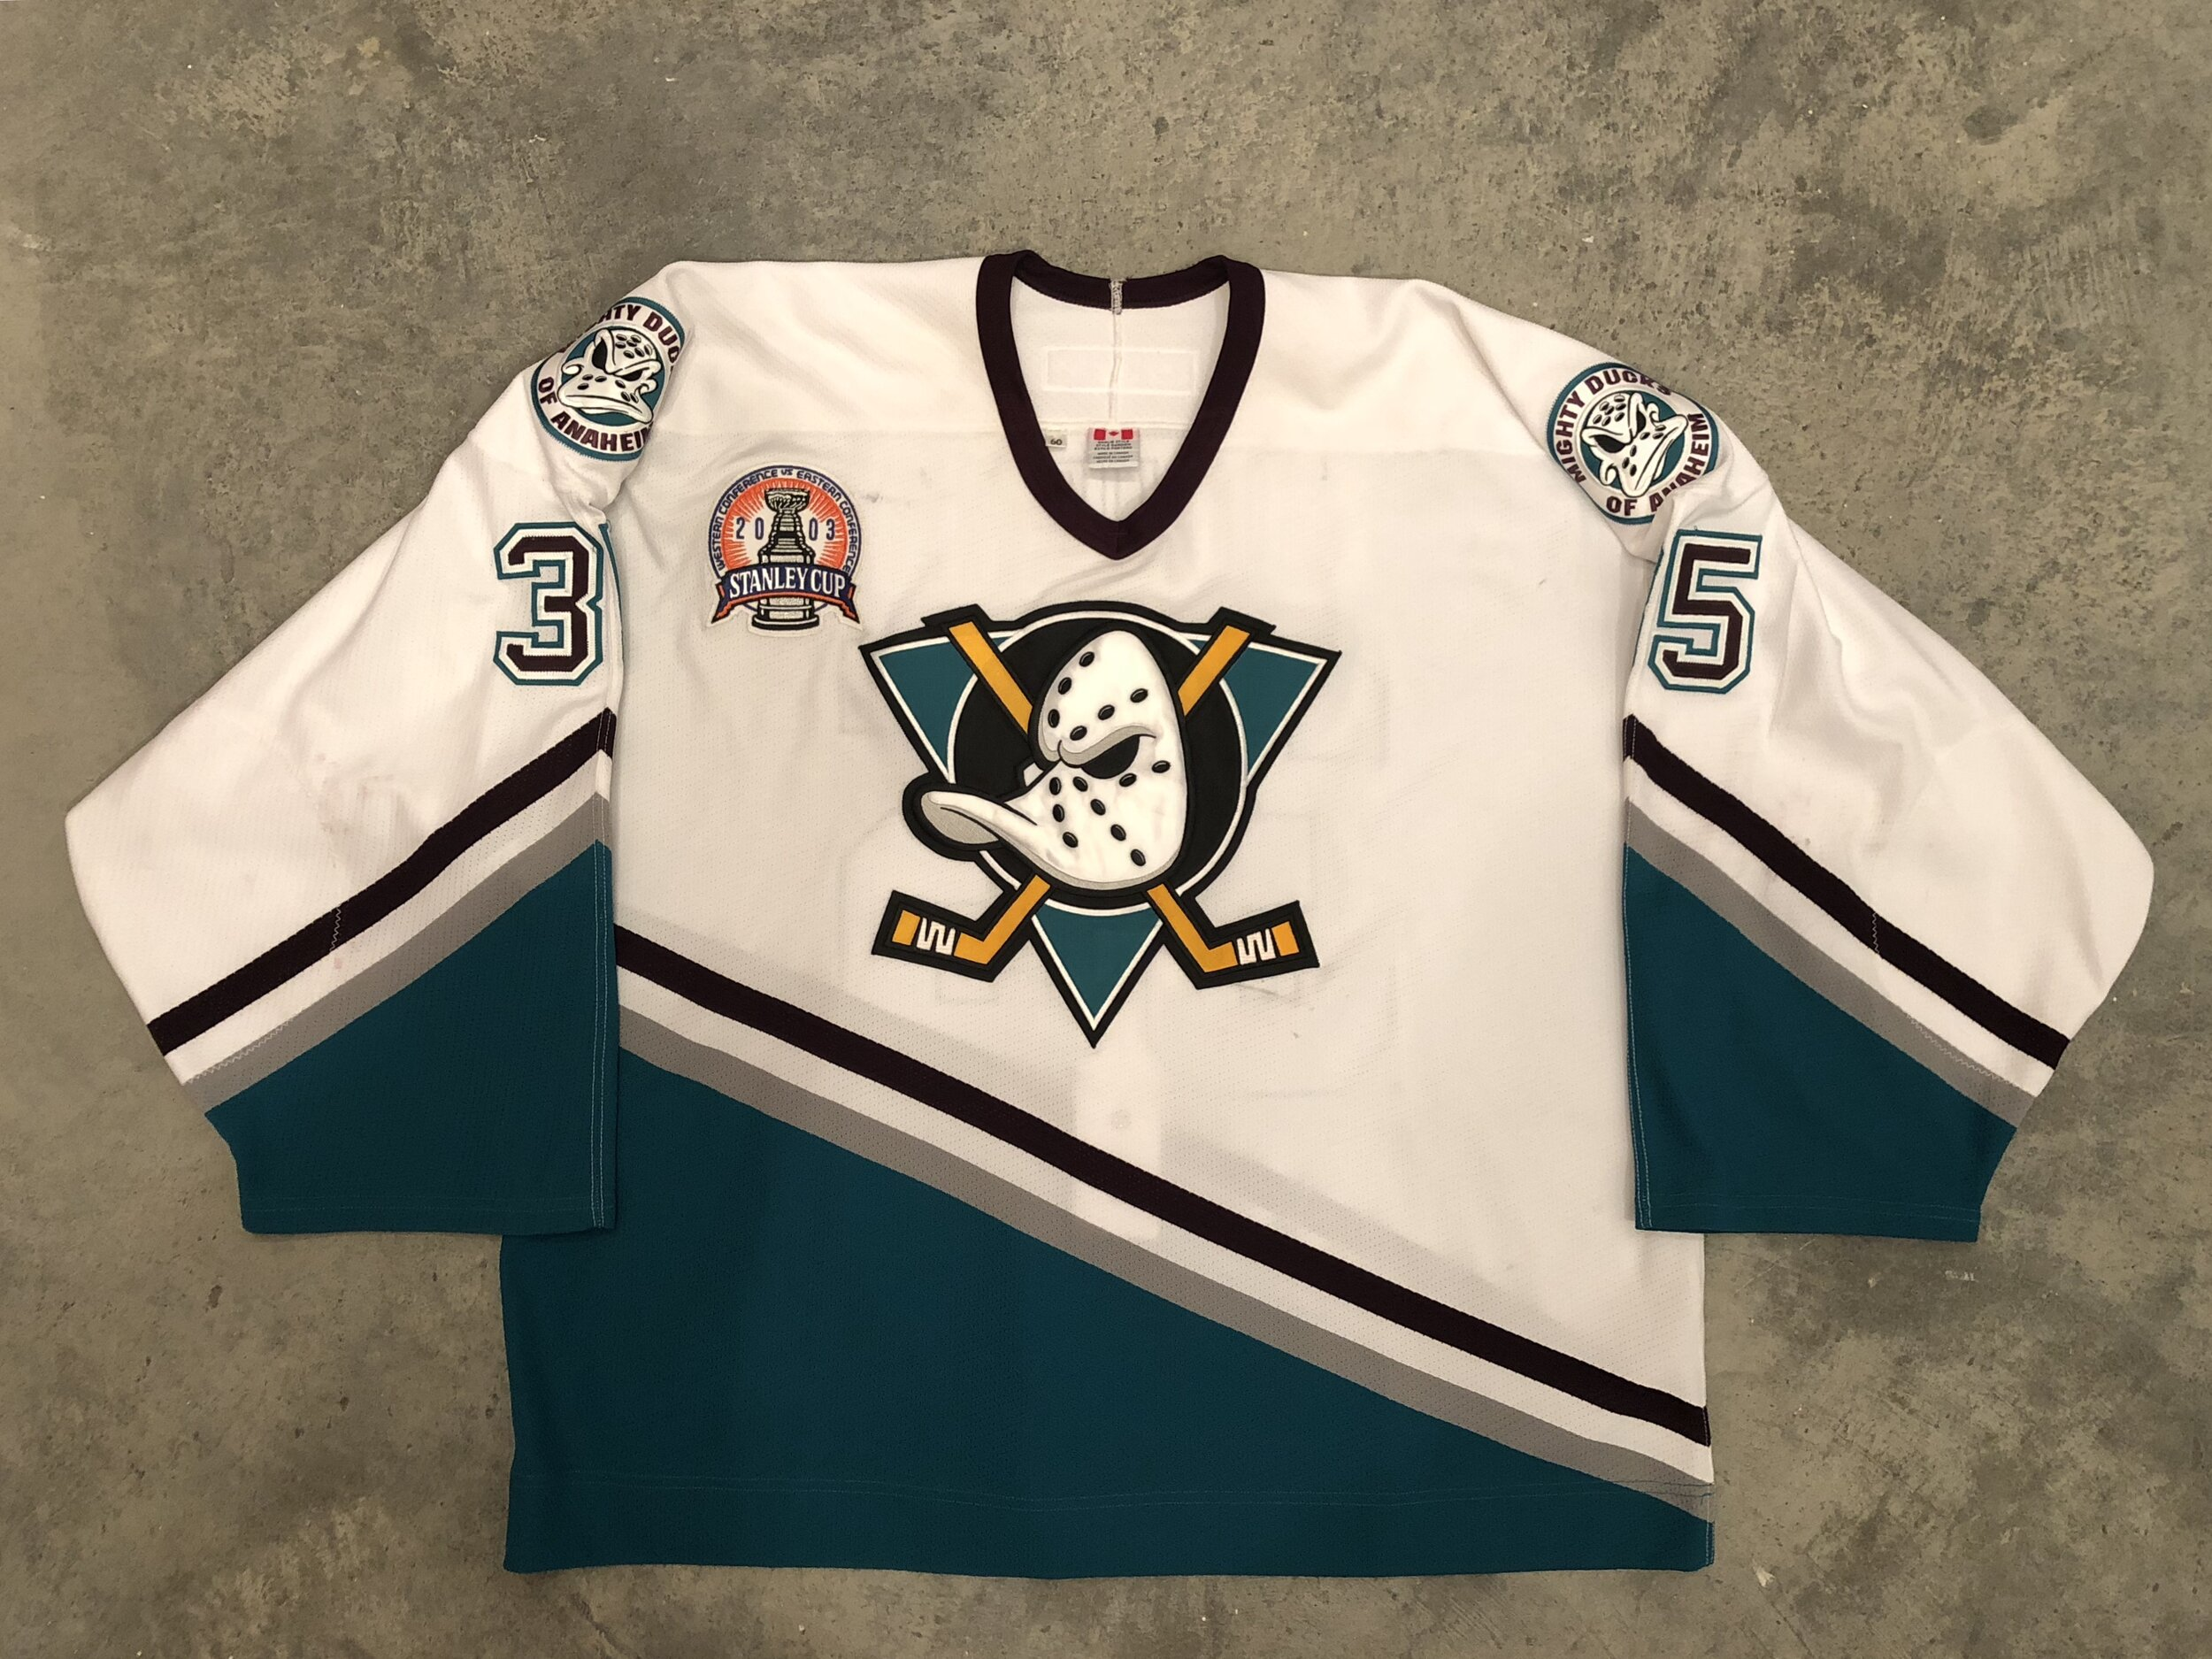 2003 J.S. Giguere game worn home jersey with the 2003 Stanley Cup Finals patch